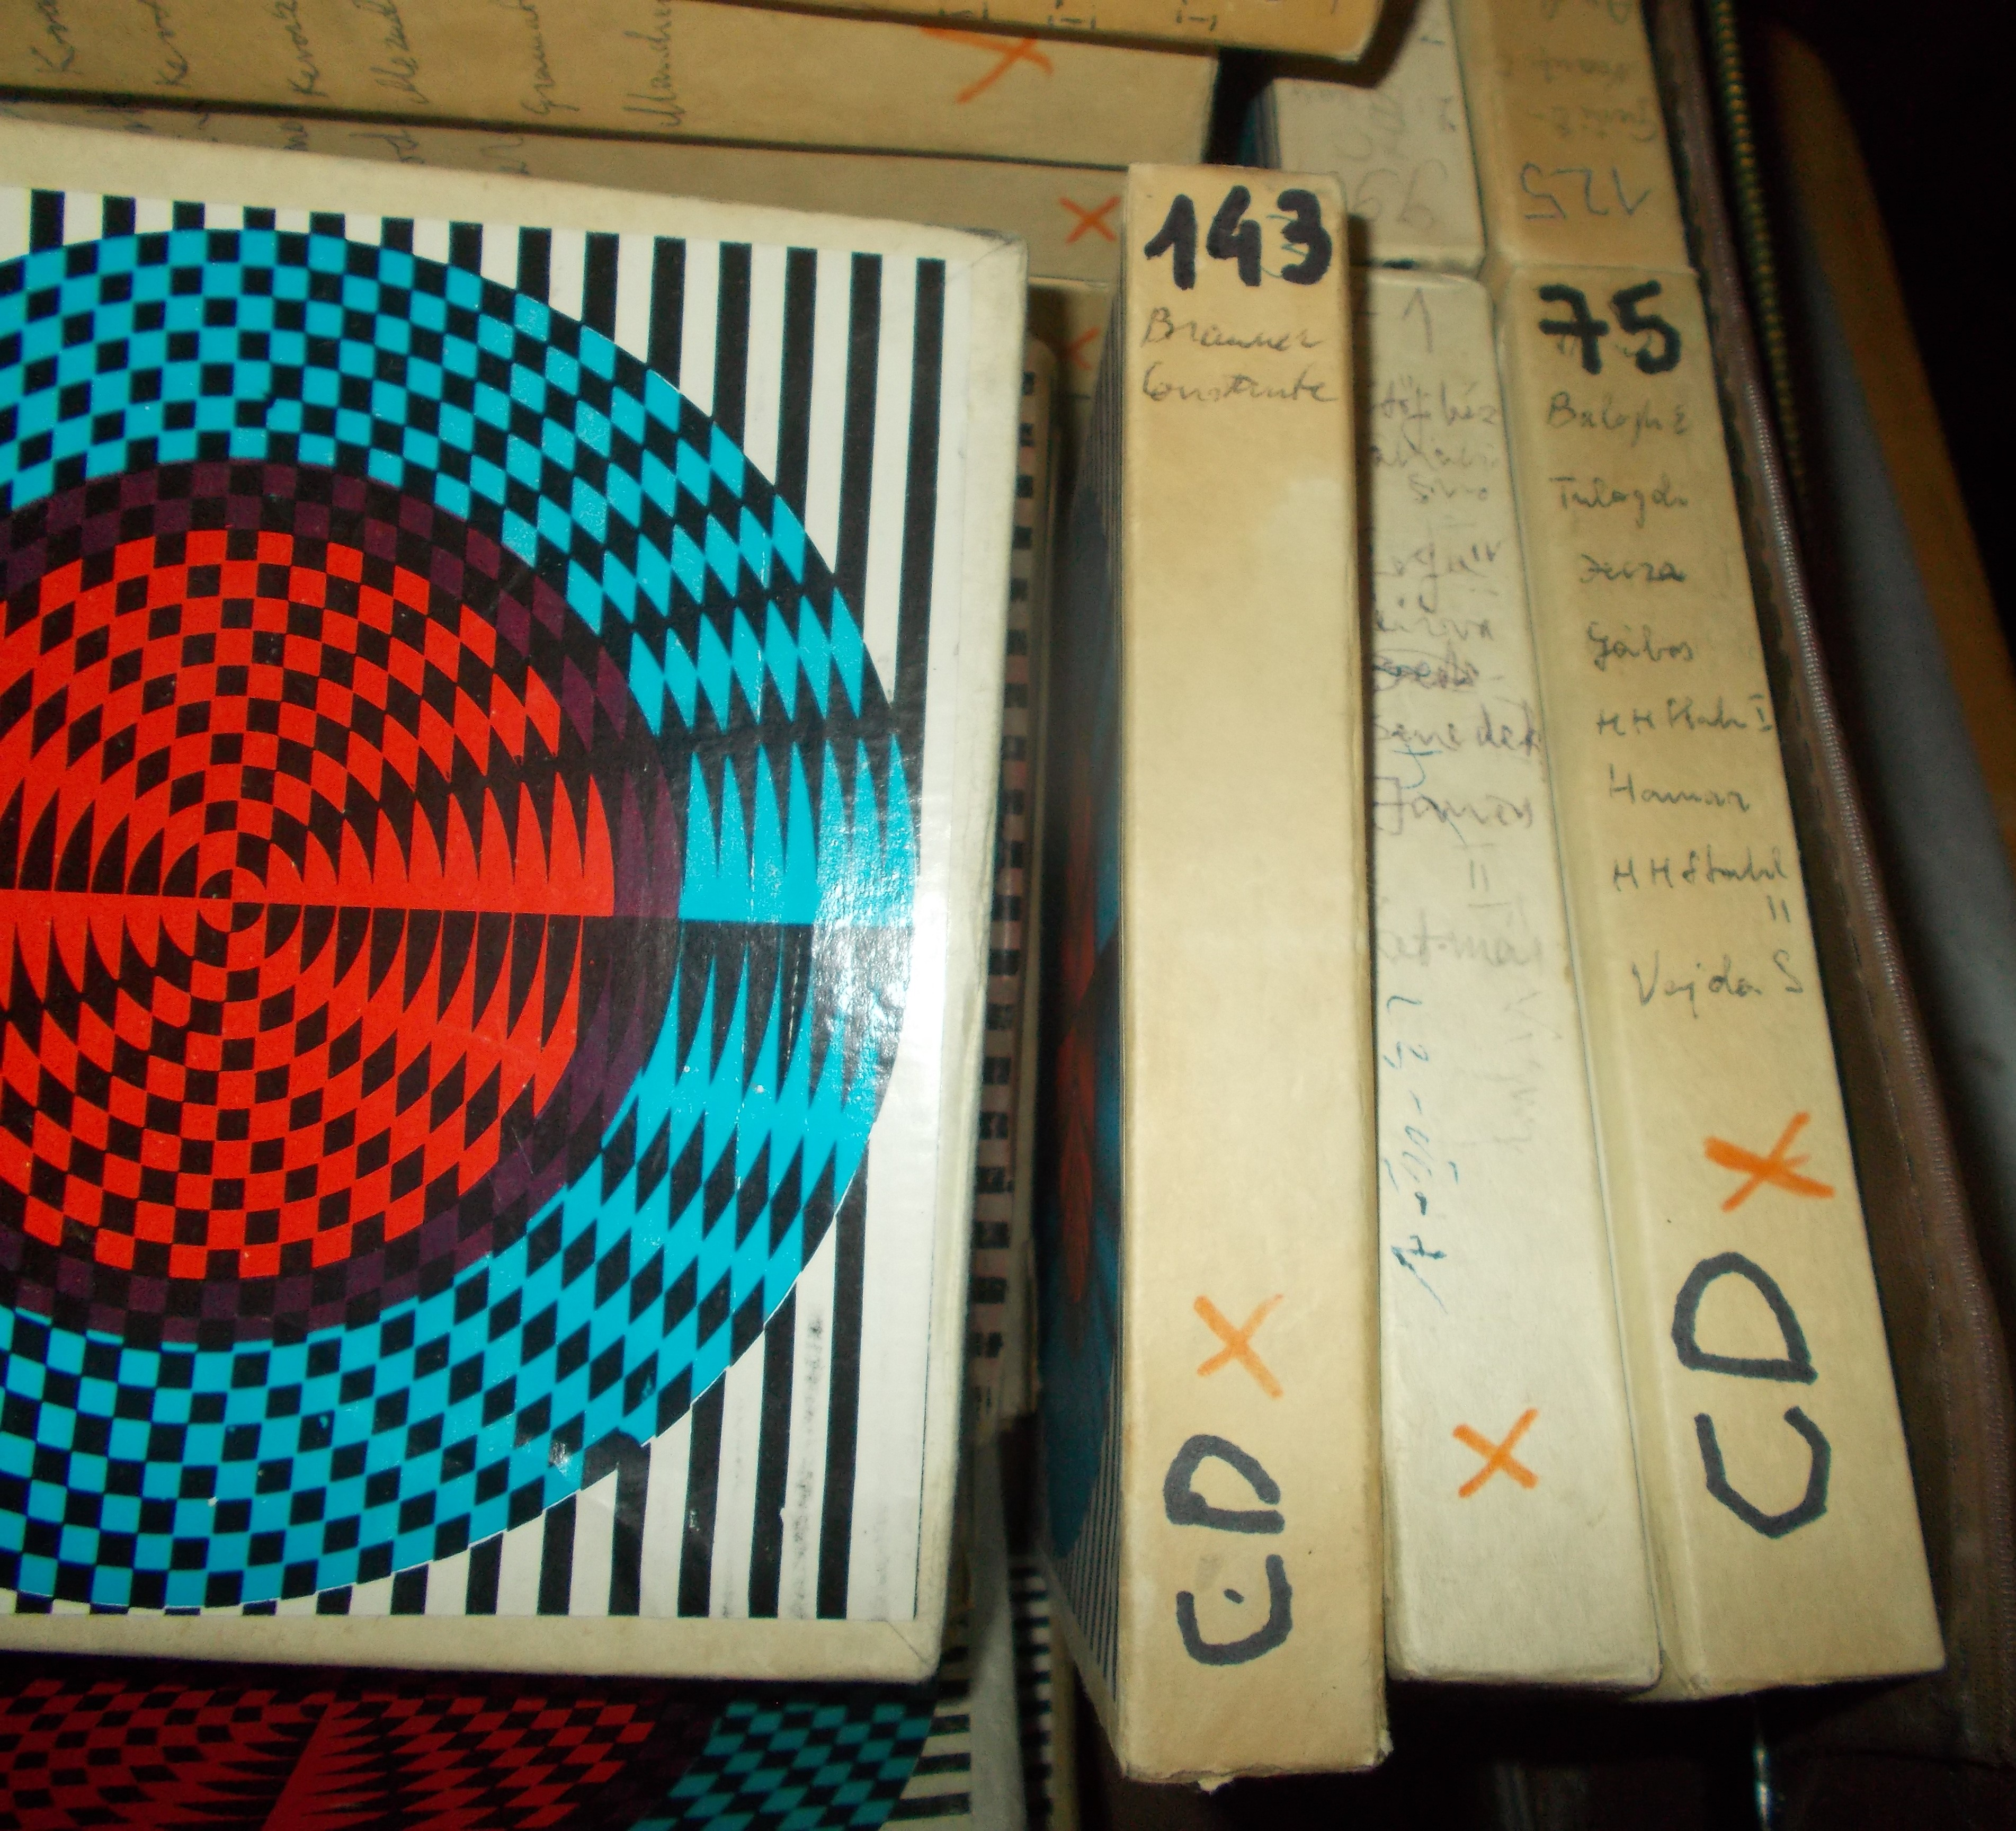 Magnetic tapes with the recording of the oral history interview made by Zoltán Rostás with Harry Brauner and Lena Constante